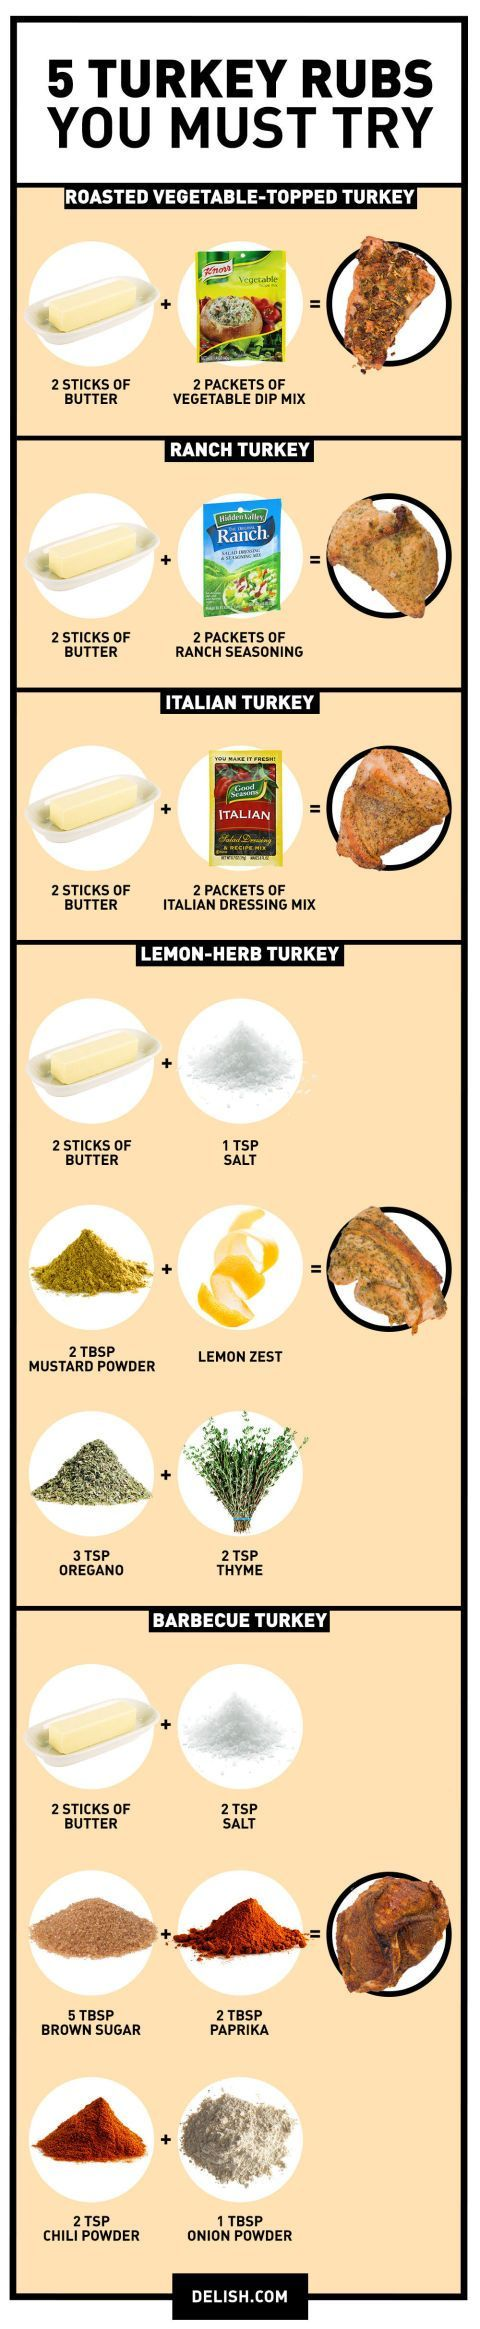 Spice up your Thanksgiving turkey with one of these awesome rub ideas.